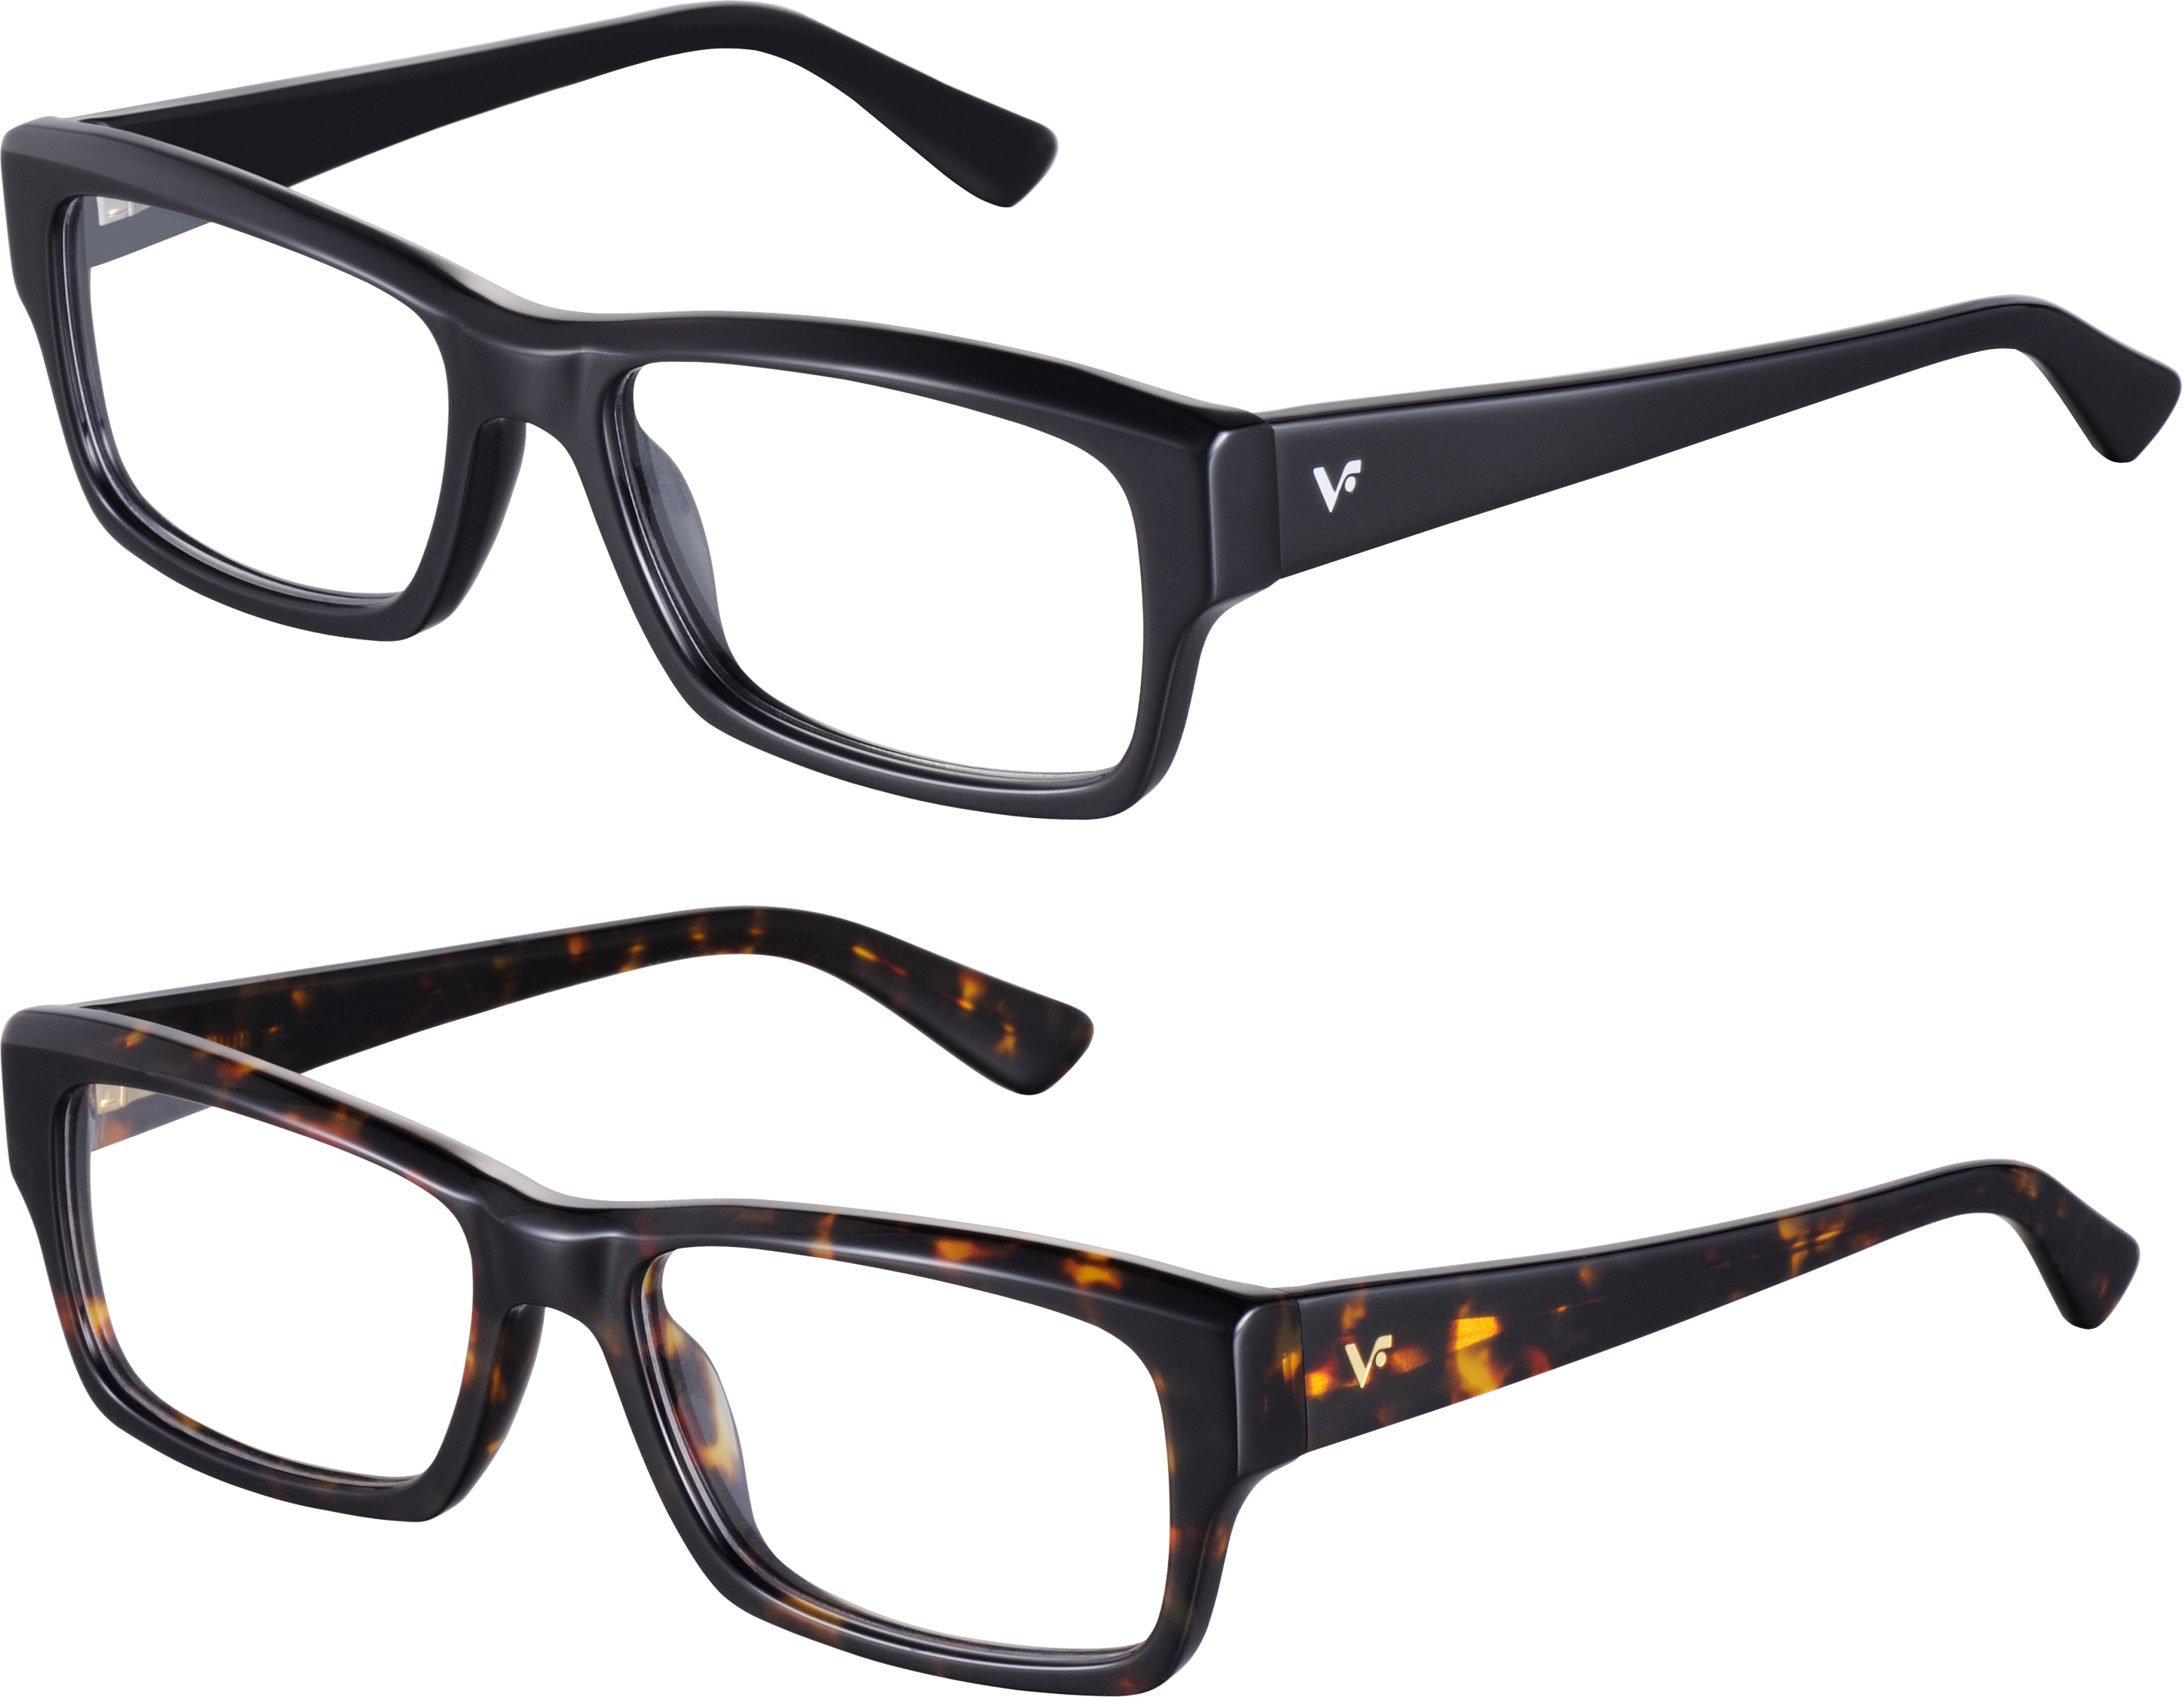 Image purepng free cc. Glasses png transparent clip royalty free library